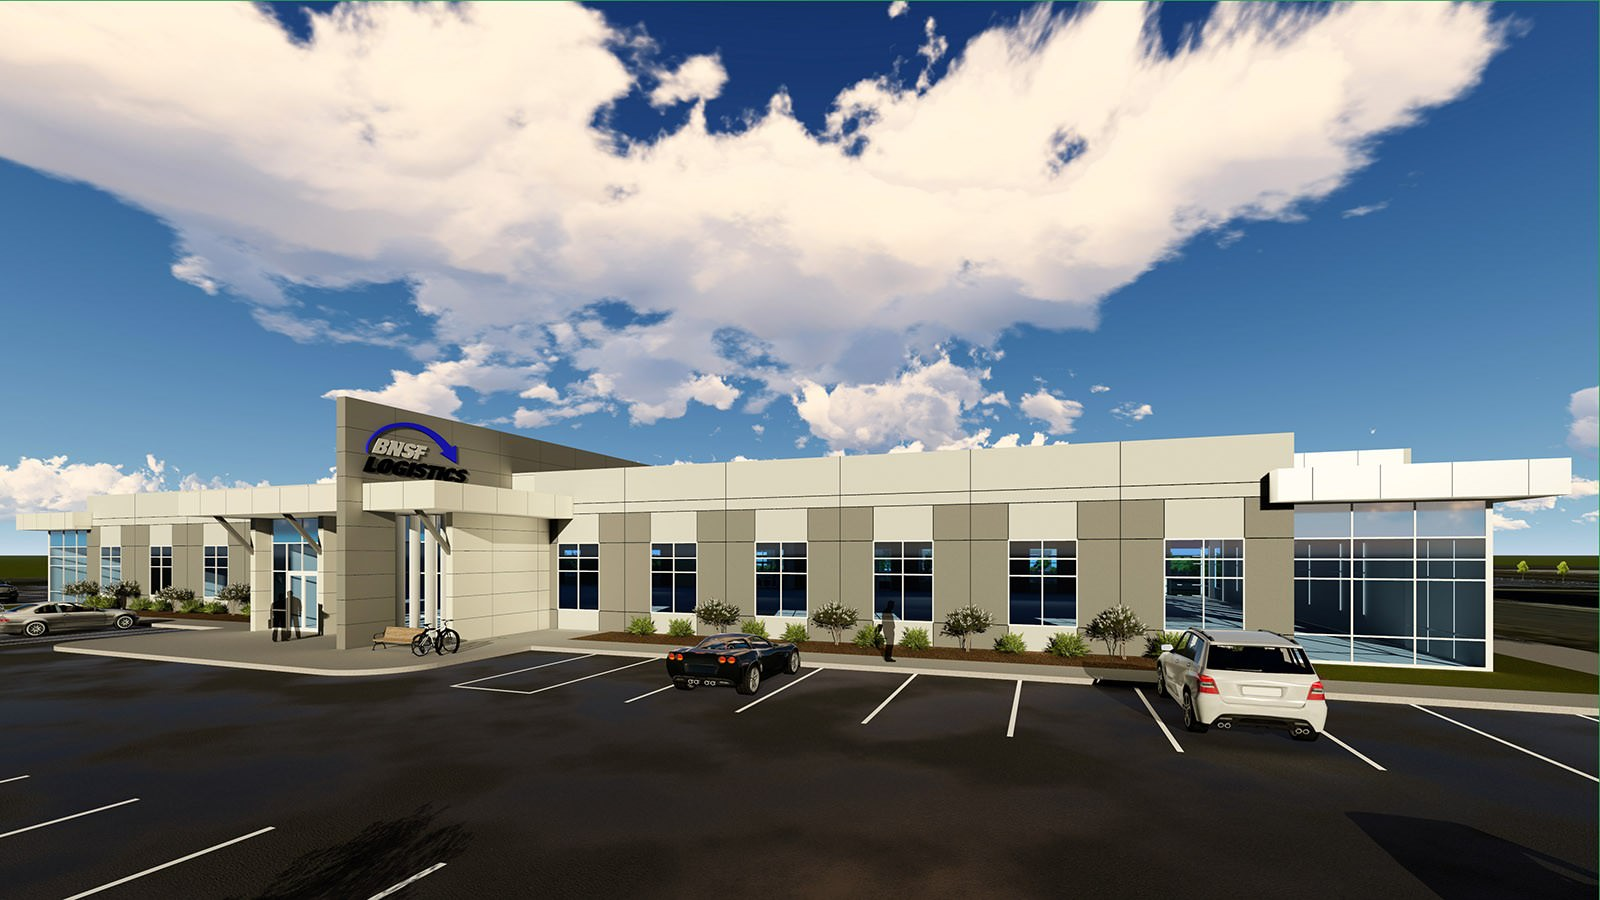 BNSF Logistics Architectural Rendering - Northwest Arkansas Industrial Office Property Acquired